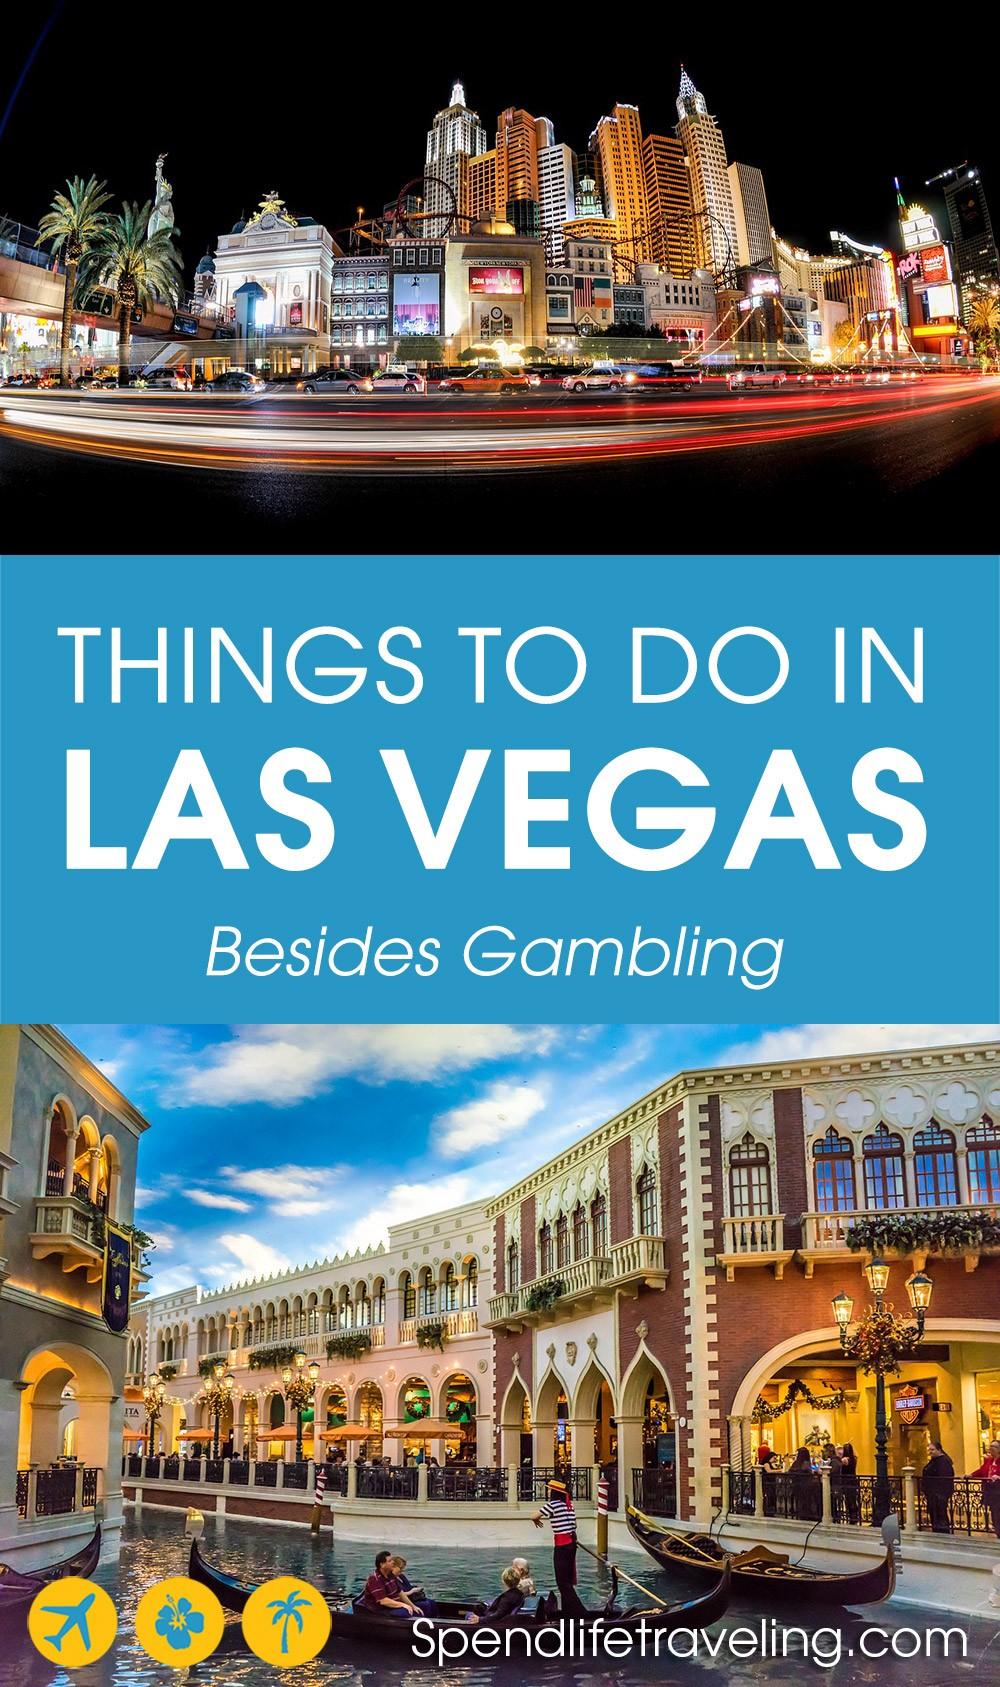 What to do in Vegas besides gambling? A complete guide. #LasVegas #visitLasVegas